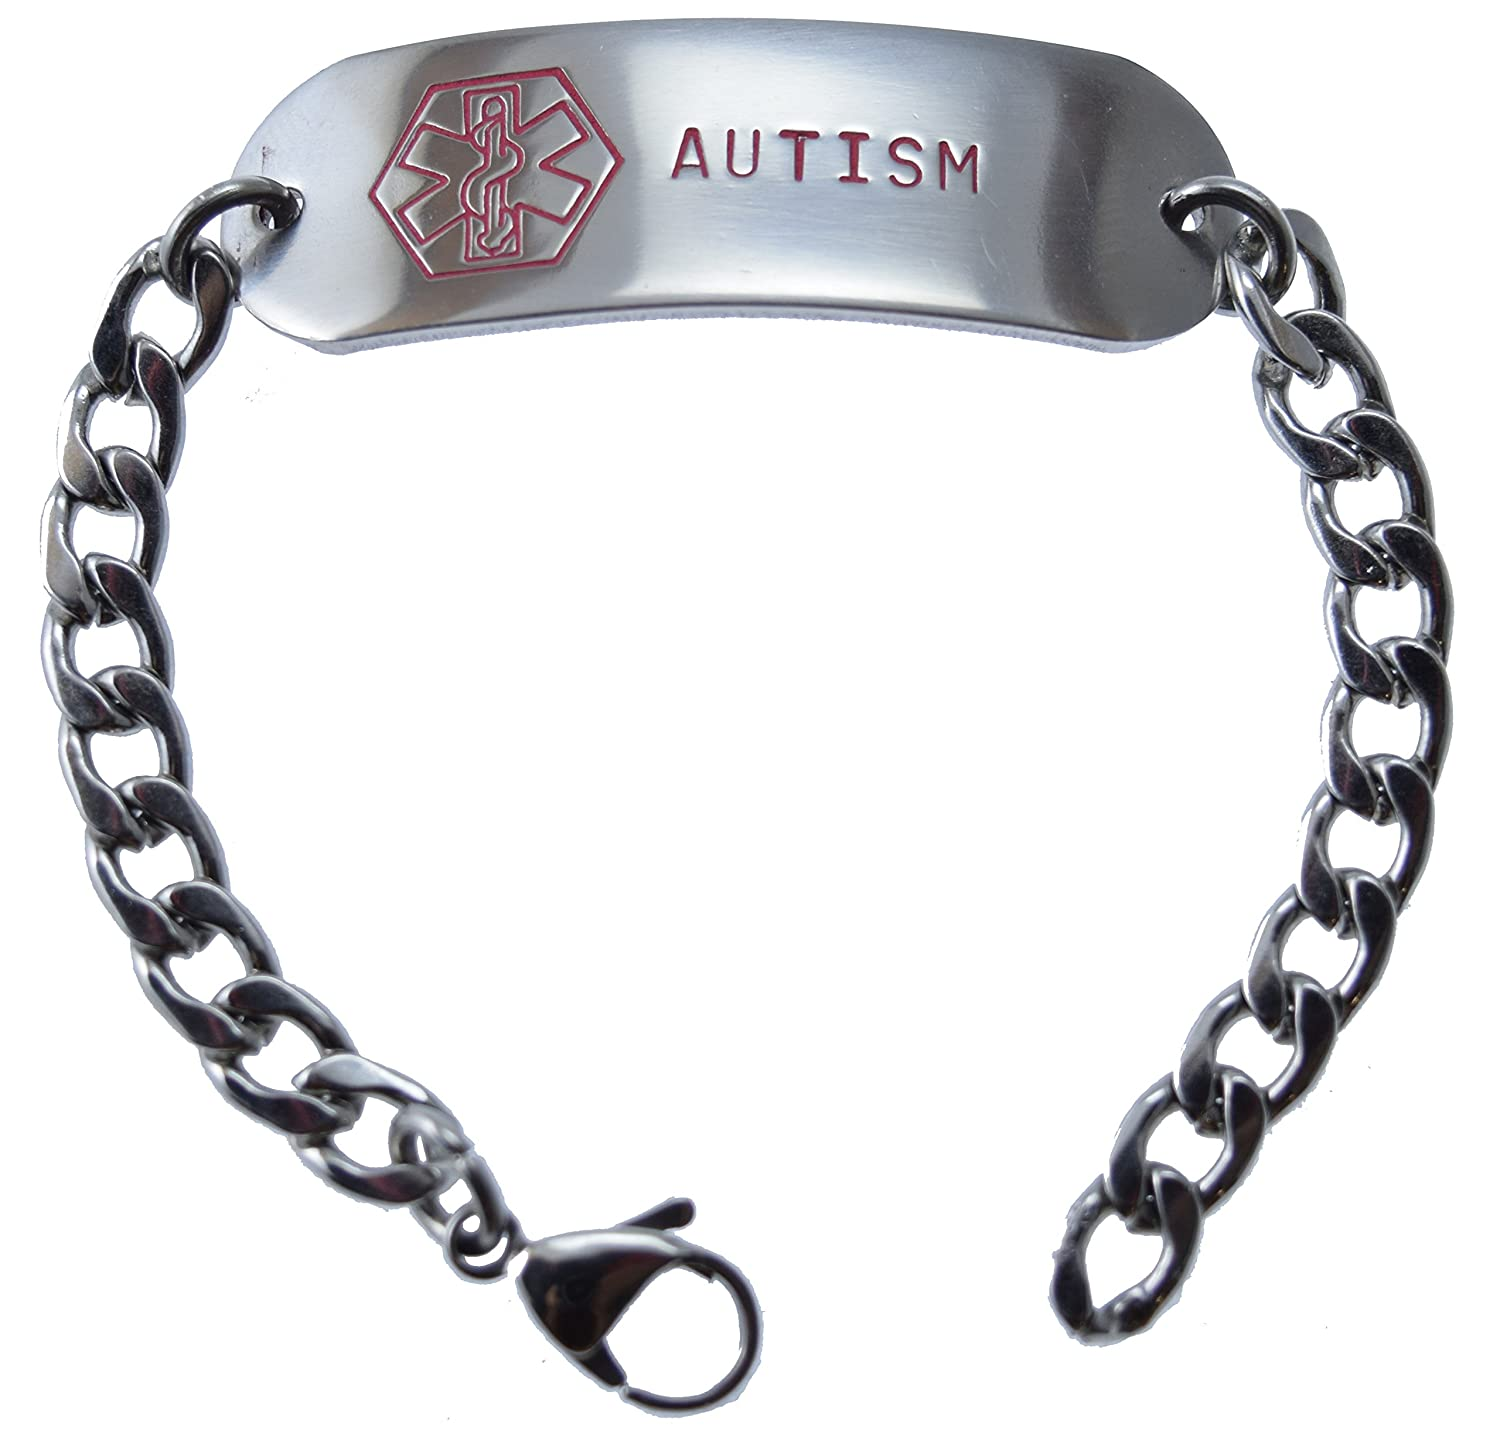 sparkly bracelet jewelry awareness autism bracelets hopeinbracelets pin by